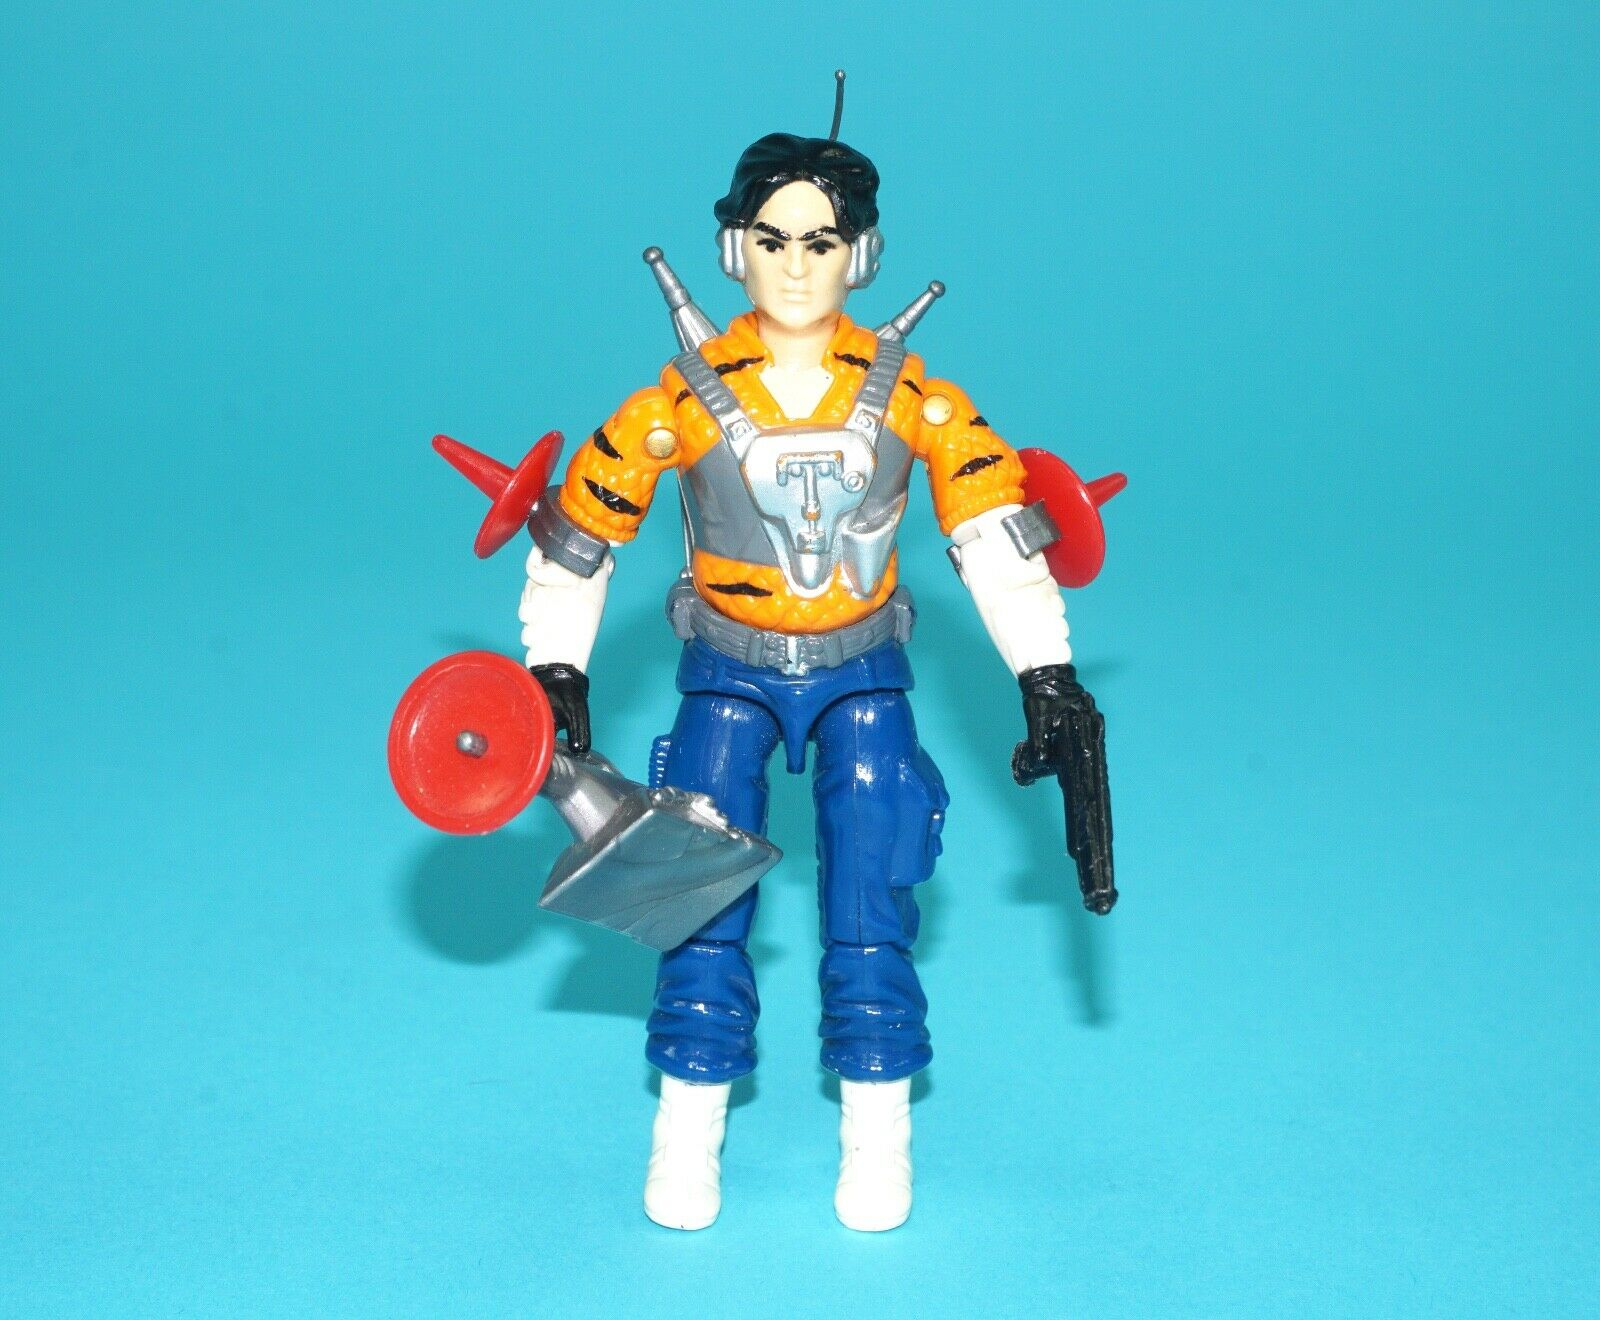 1990 GI JOE TIGER FORCE PSYCHE-OUT UK   EURO EXCLUSIVE 100% COMPLETE C9 HASBRO